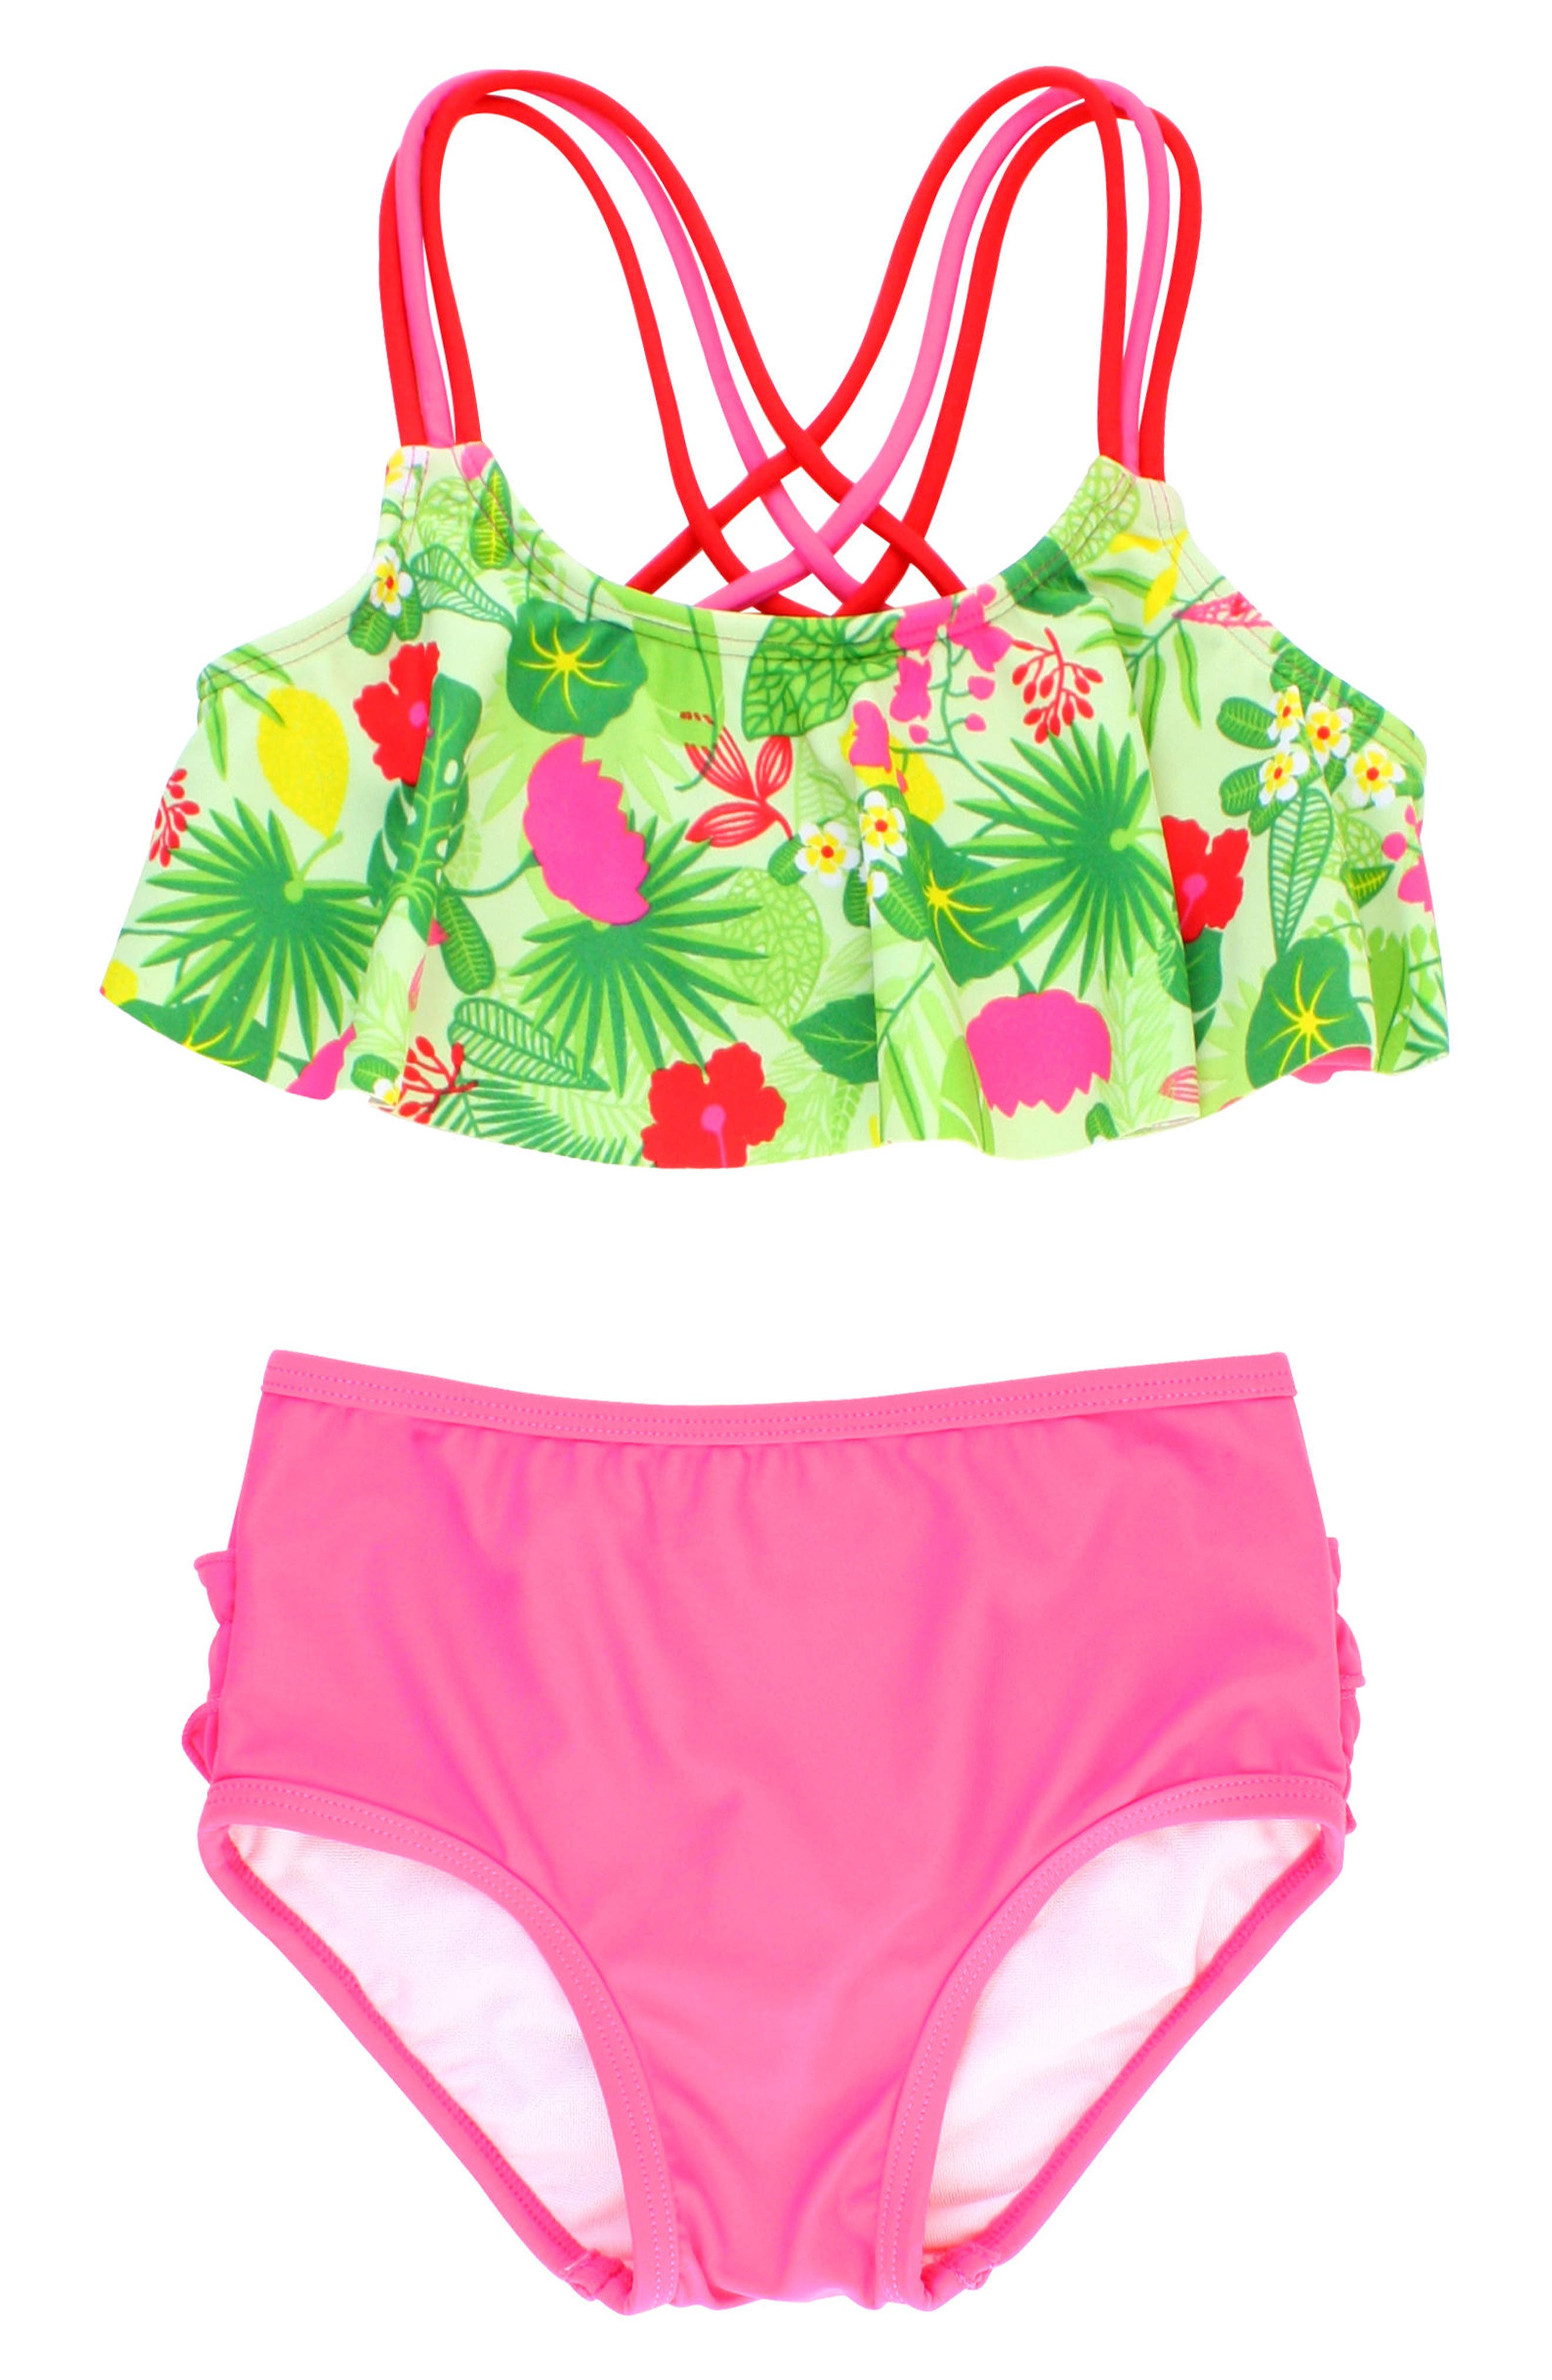 Puerto Vallarta Flounce Two-Piece Swimsuit,                             Main thumbnail 1, color,                             Candy